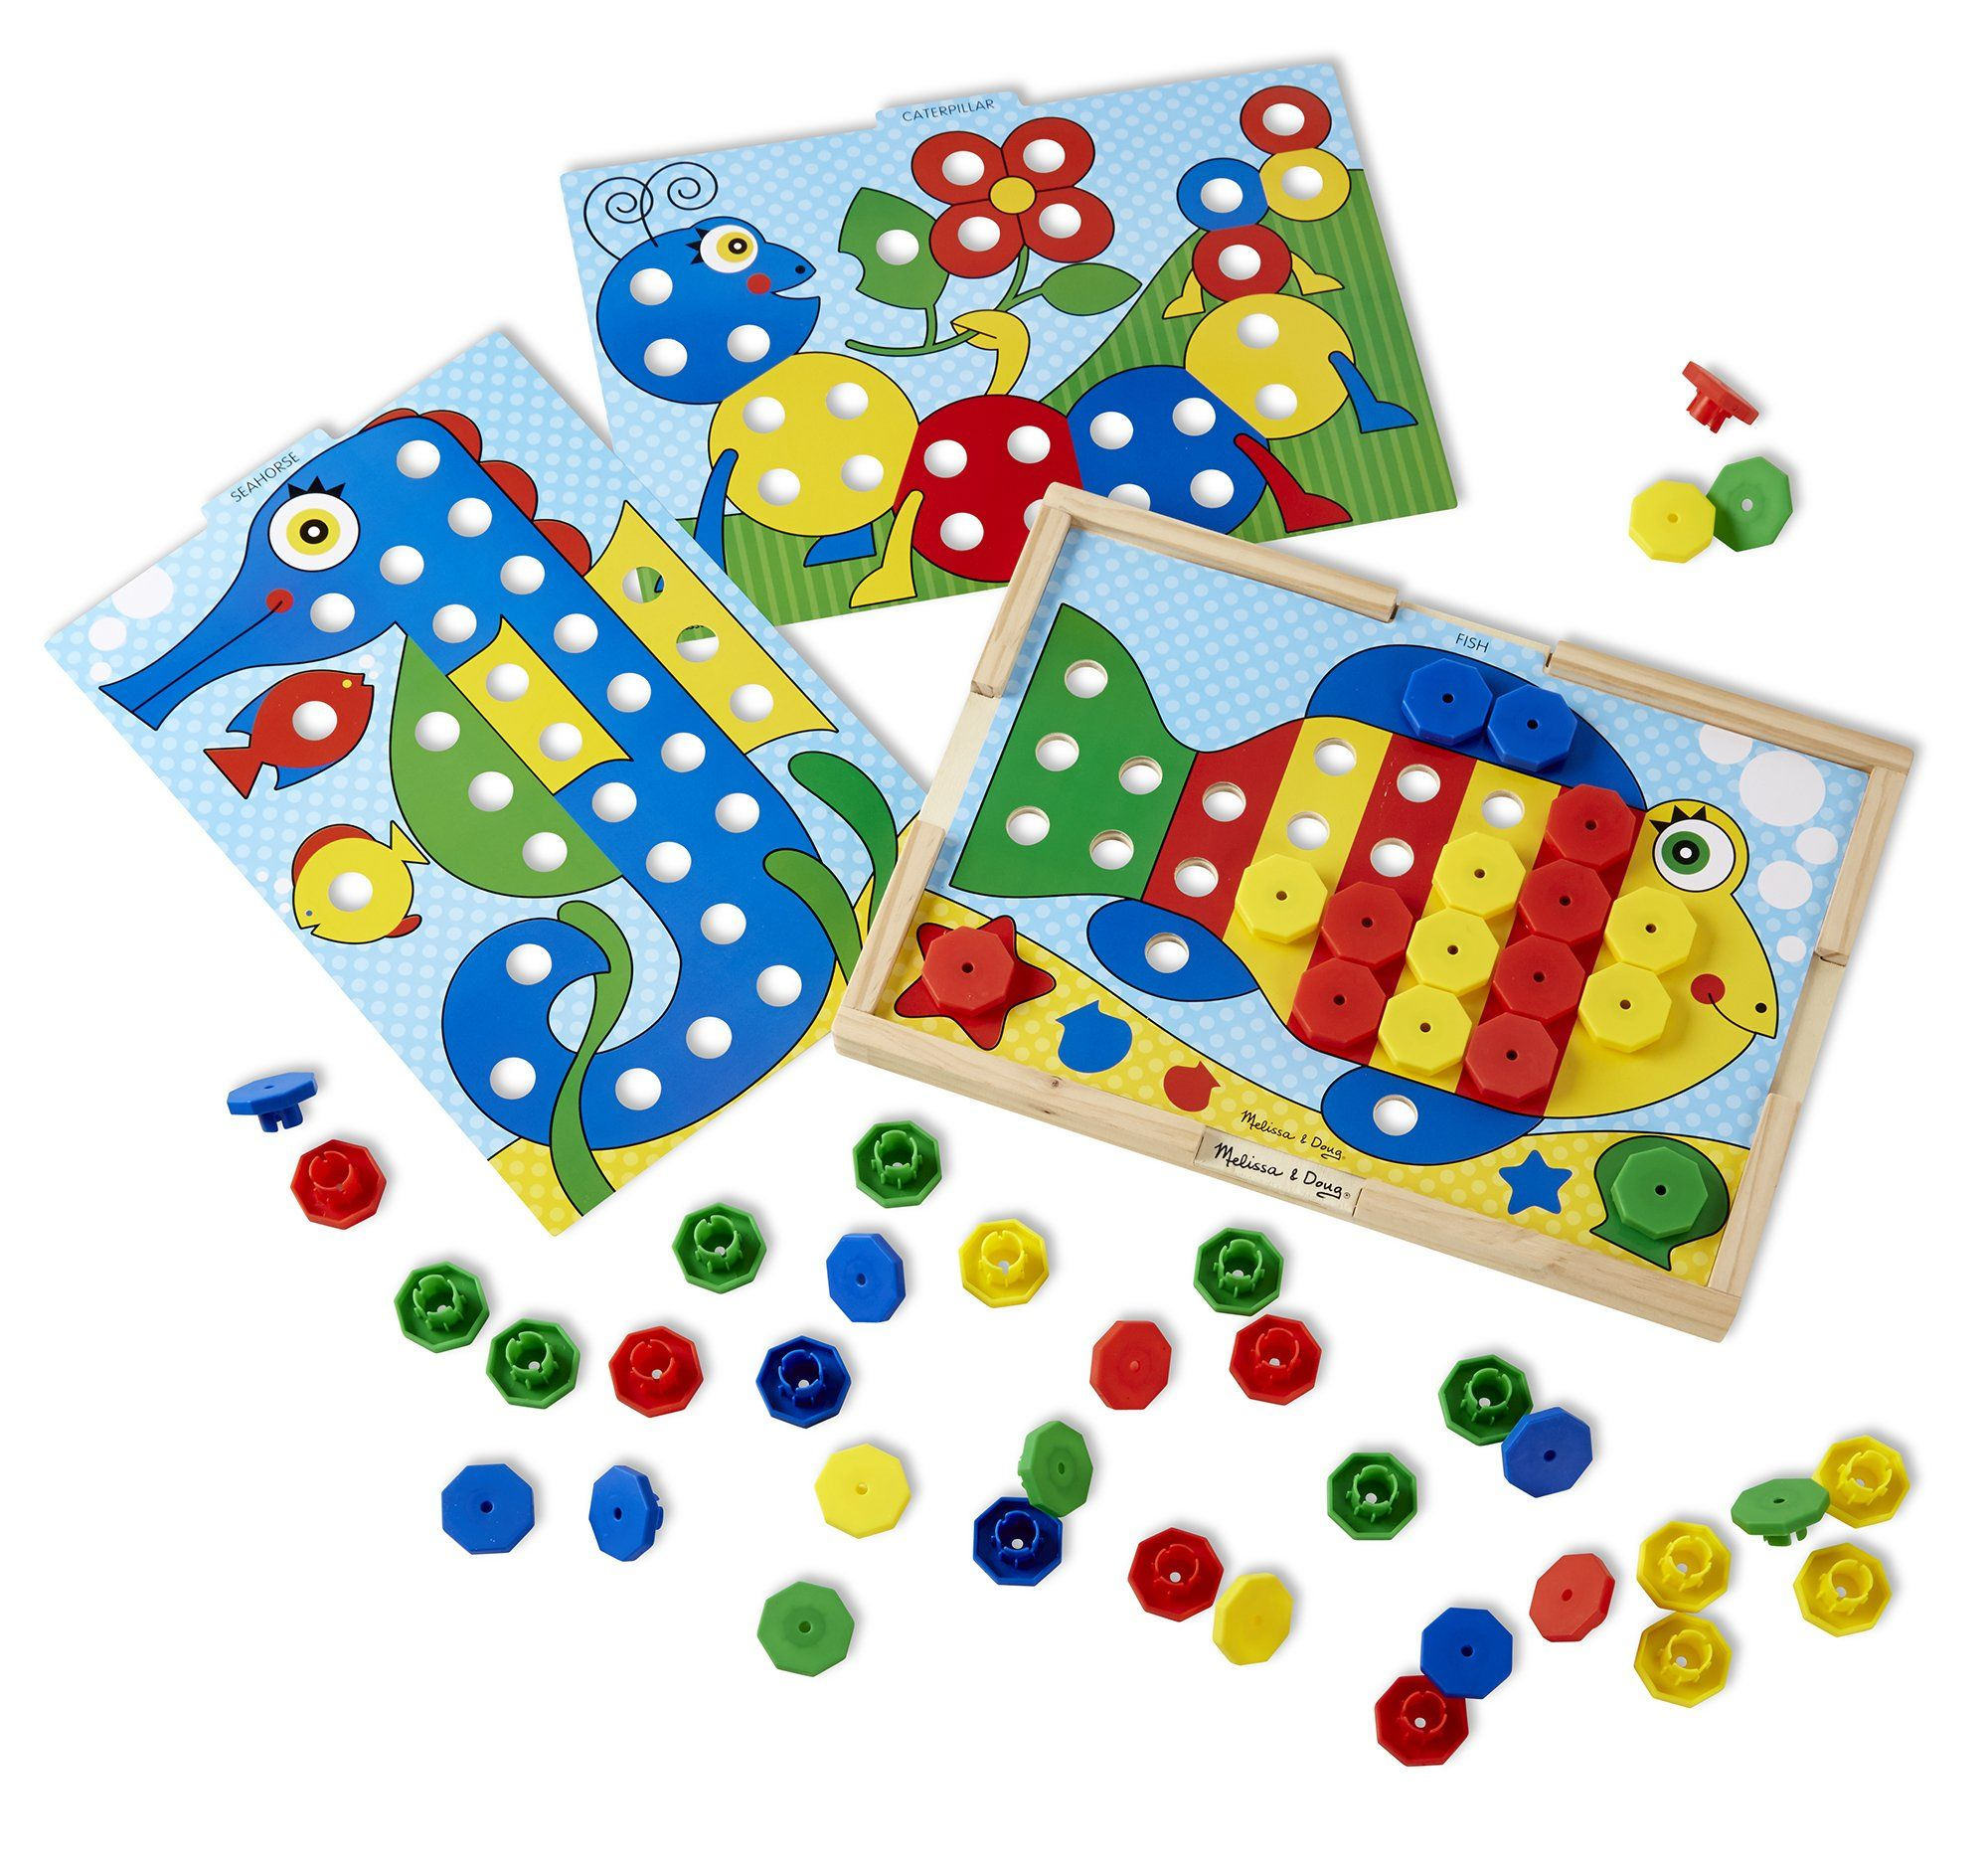 Melissa & Doug Sort and Snap Color Match - Sorting and Patterns Educational Toy. Create colorful pictures using the included boards and snap caps. Includes 10 double-sided picture cards and 64 snap caps. Sturdy wooden frame. Terrific value. Great for color recognition, sorting, and beginning math skills.